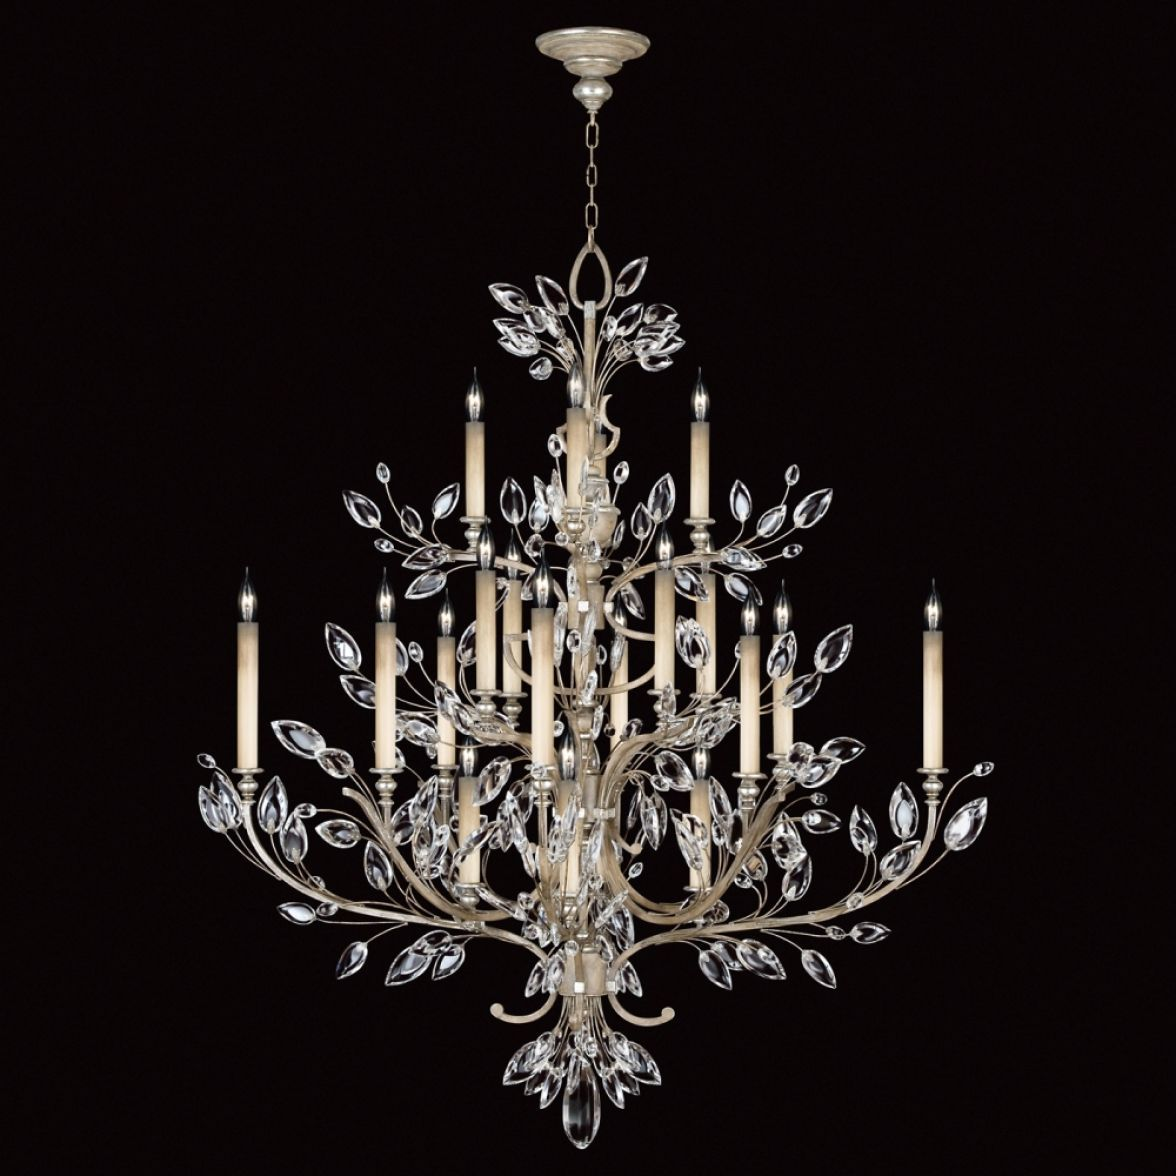 Crystal Laurel chandelier